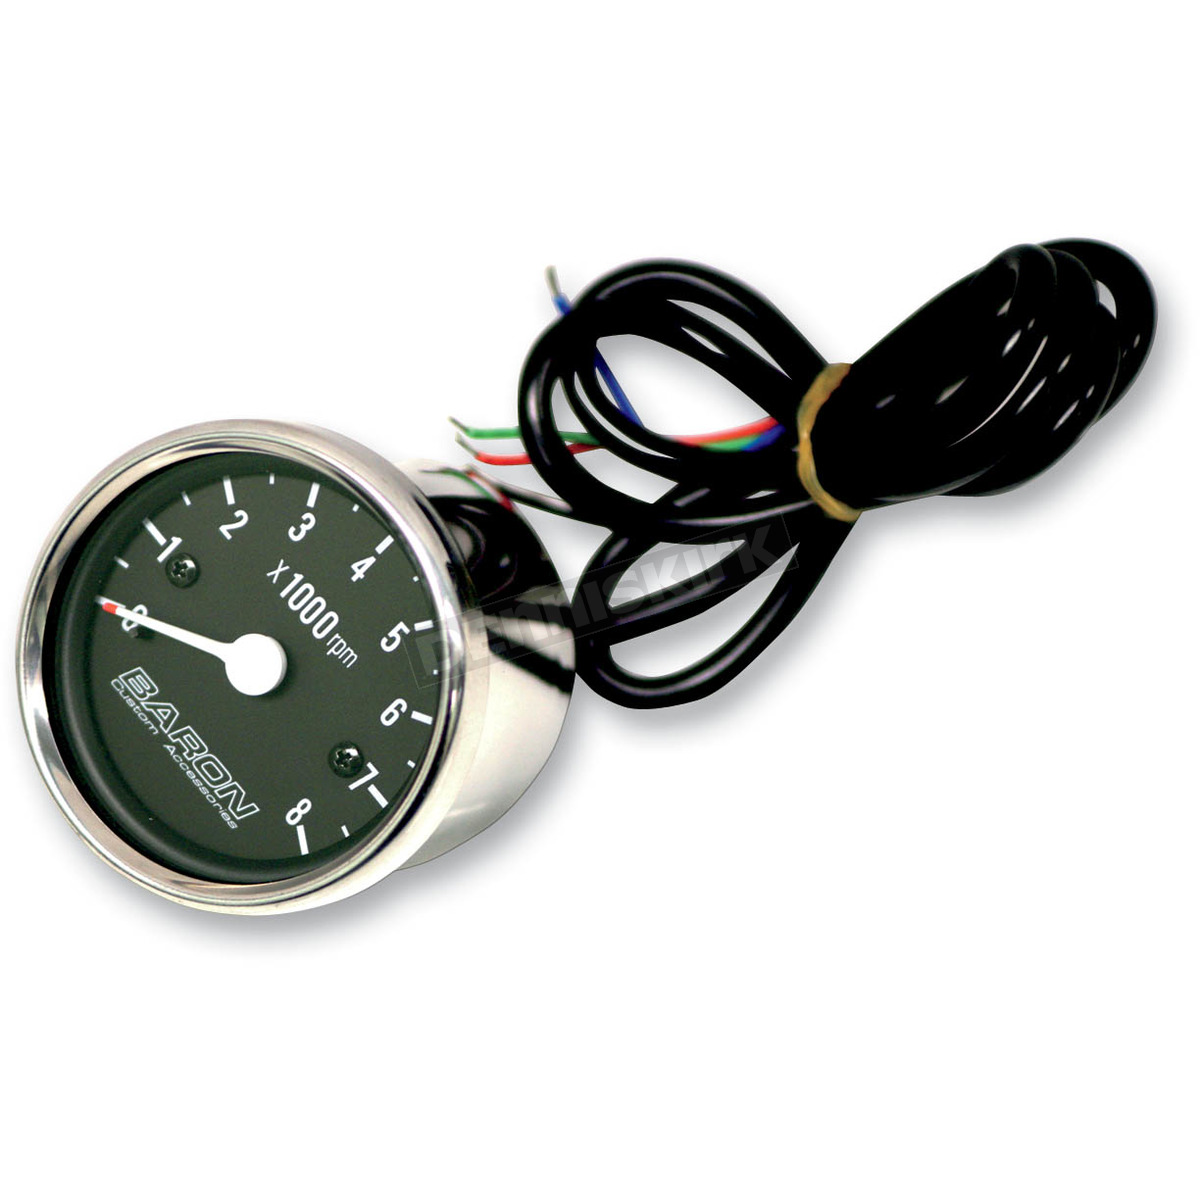 Tachometer Replacement Internals - BA-07-660T